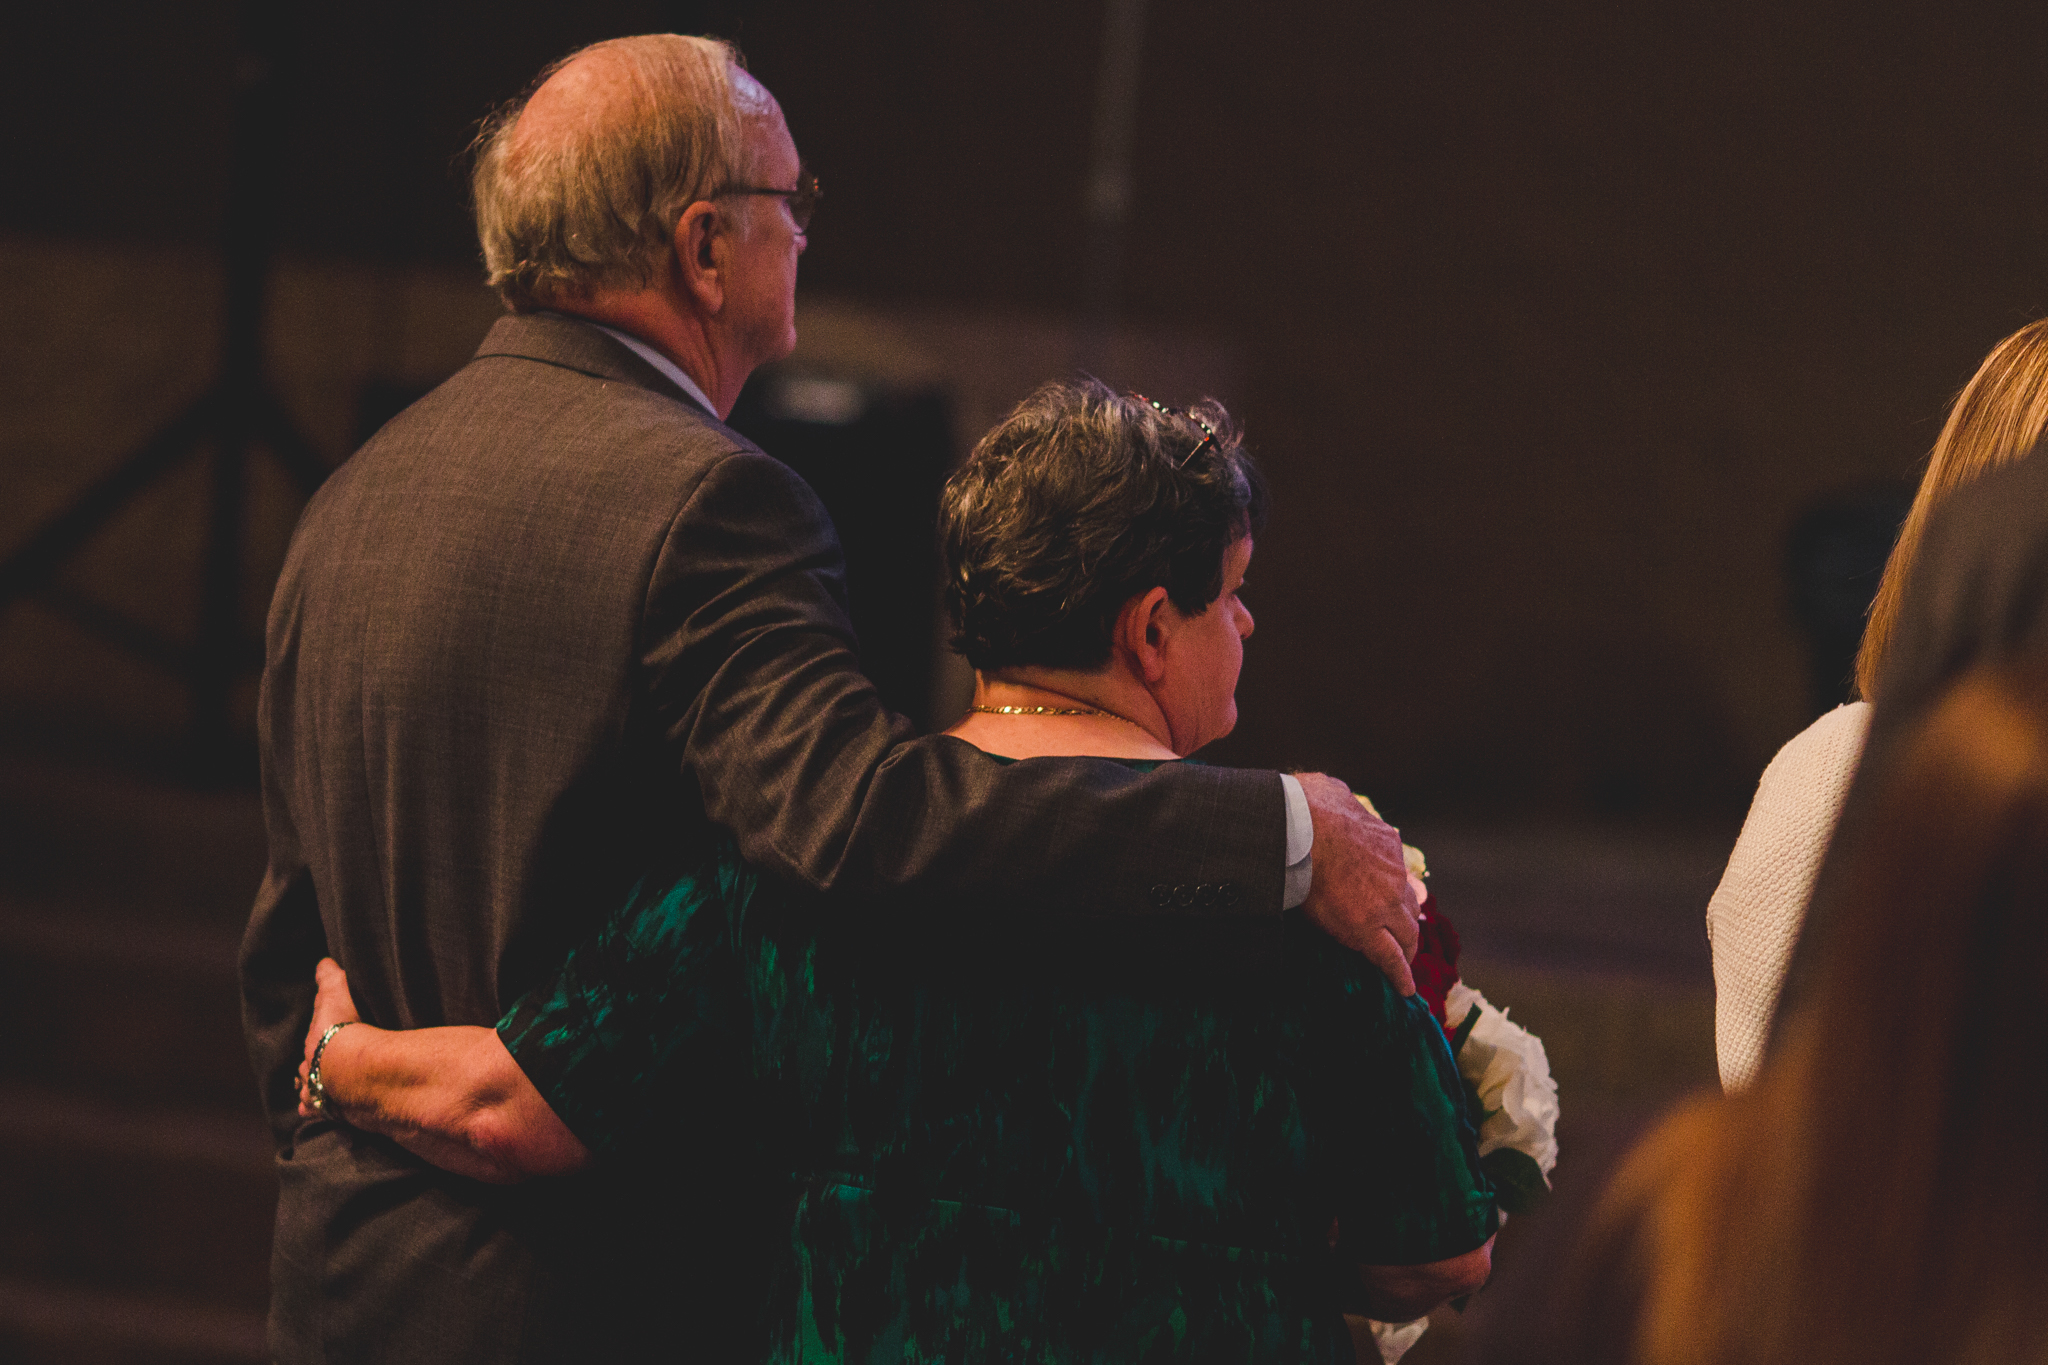 rs aunt puts arm around husband during ceremony